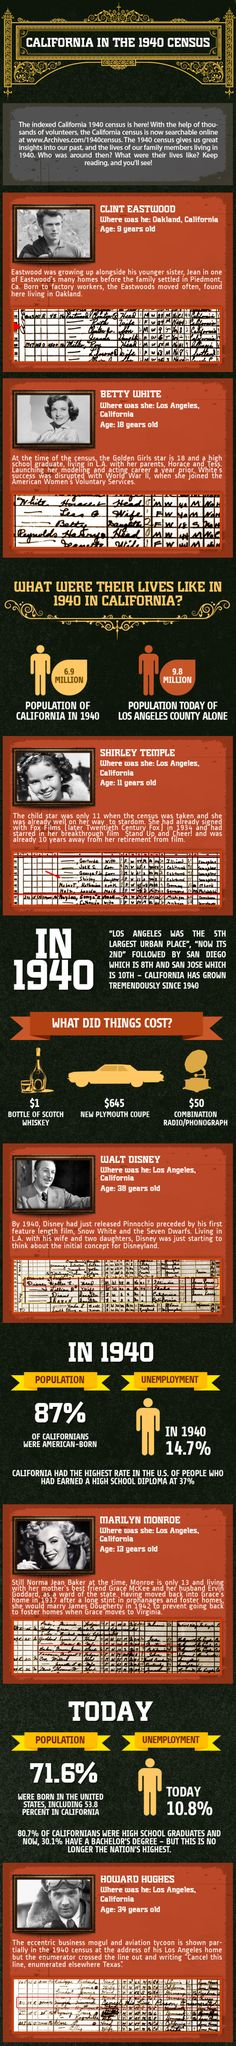 Some interesting Infographic about California census in 1940.  Hope you like it!